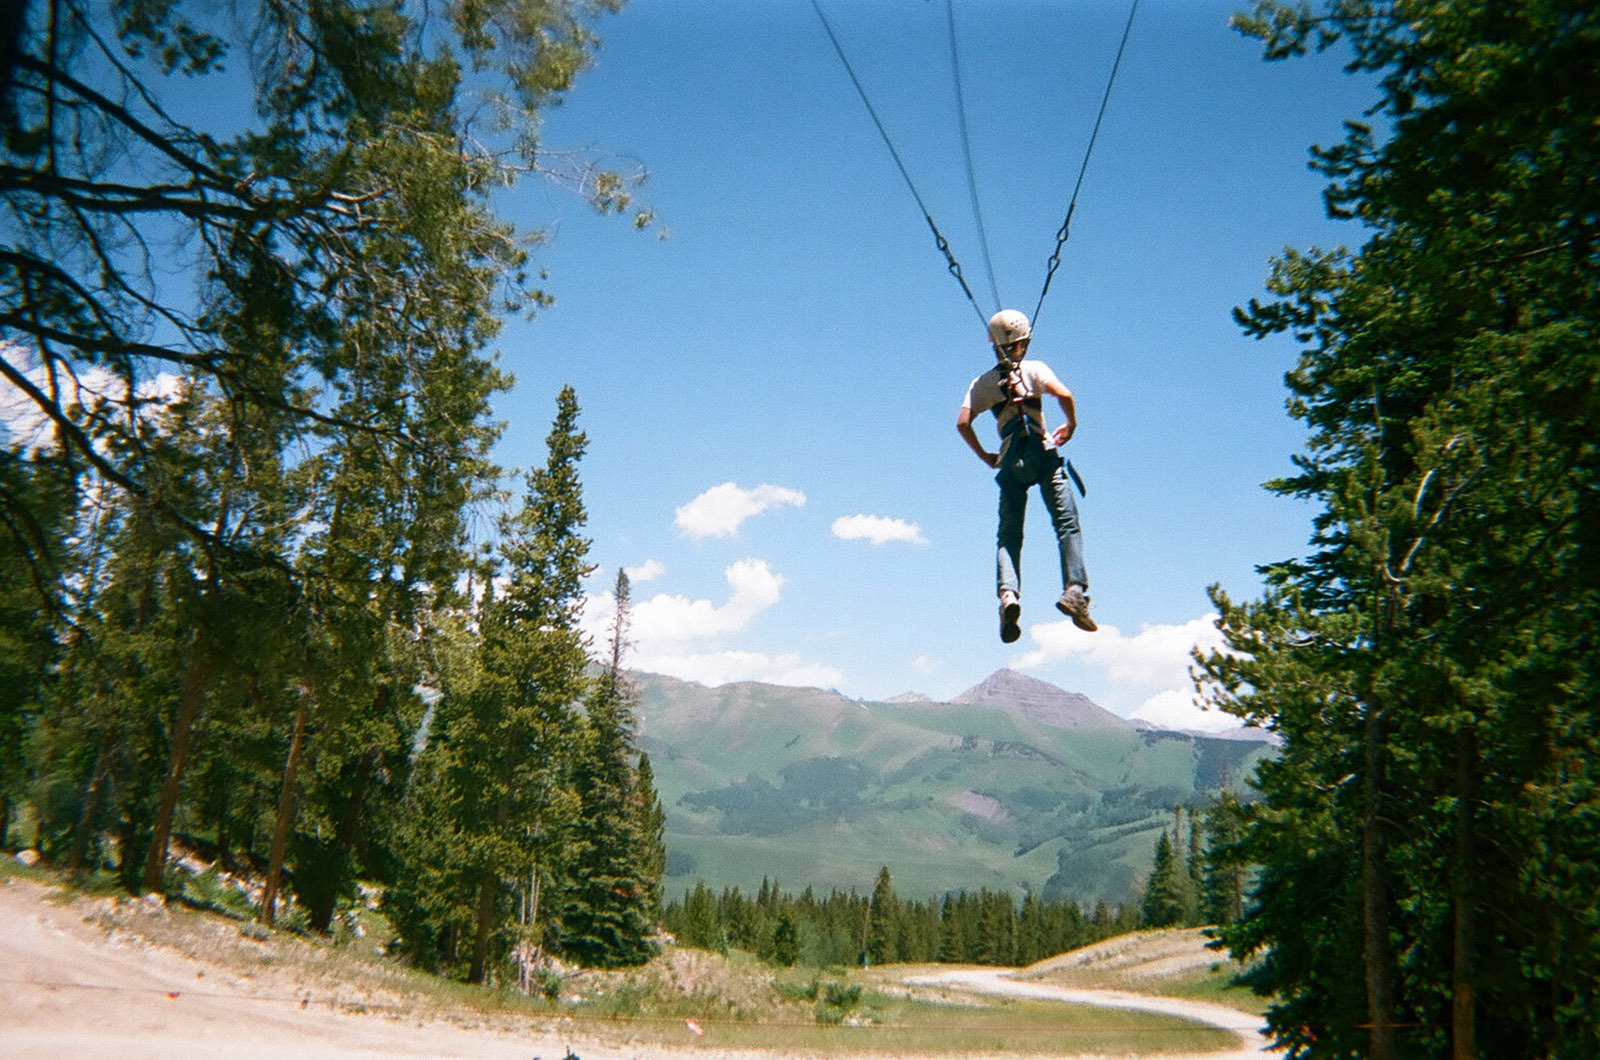 a student zip-lines in the Colorado Rockies